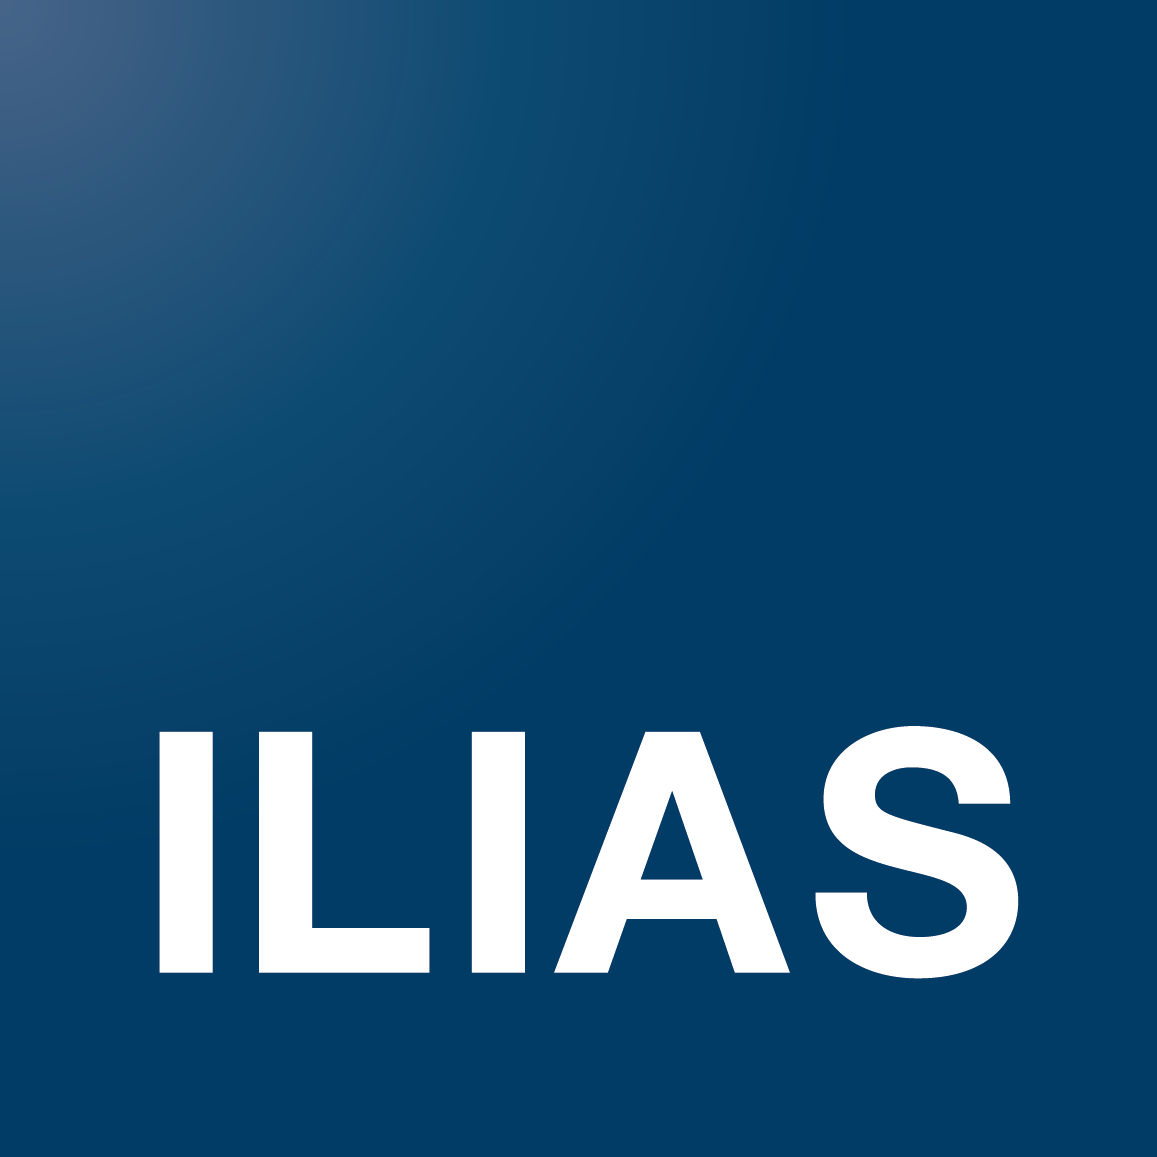 ILIAS - The Open Source Learning Management System